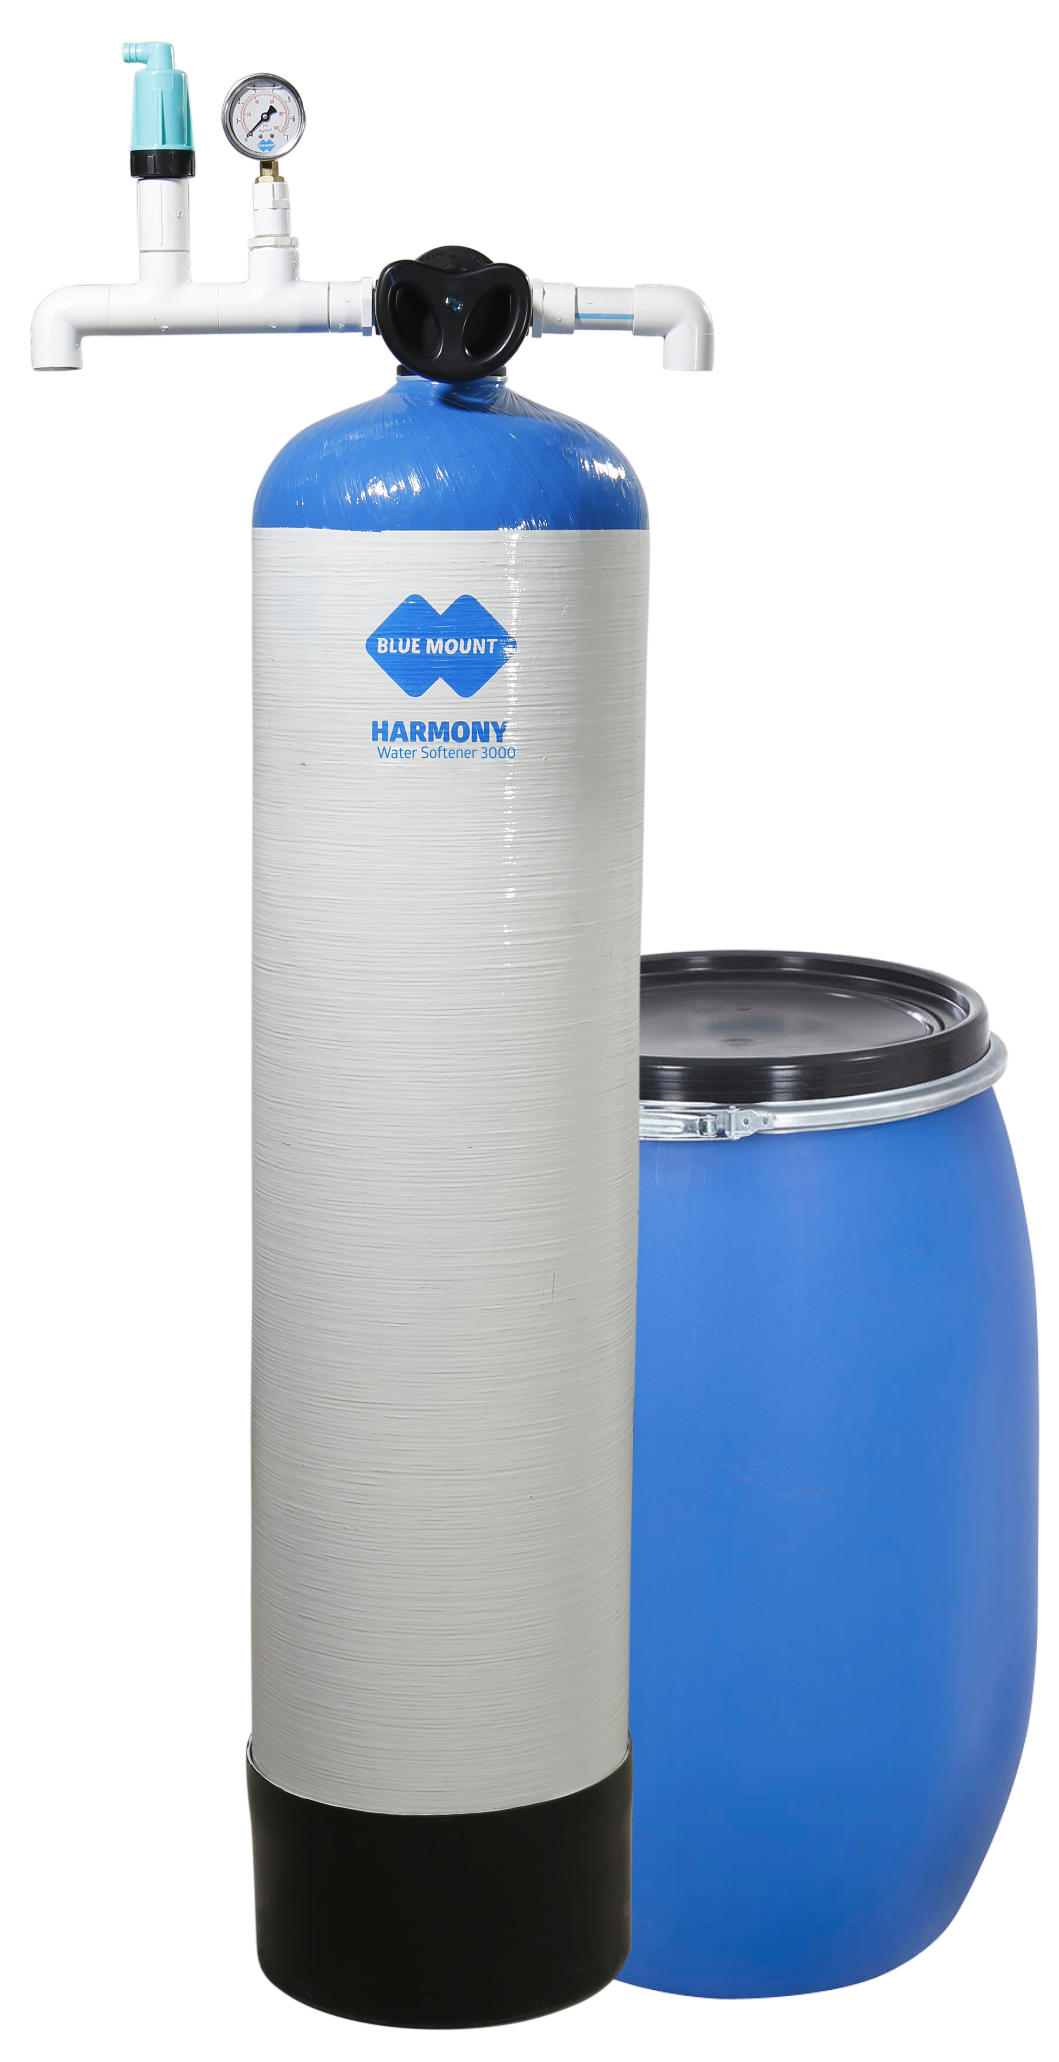 Blue Mount Harmony water softener 3000